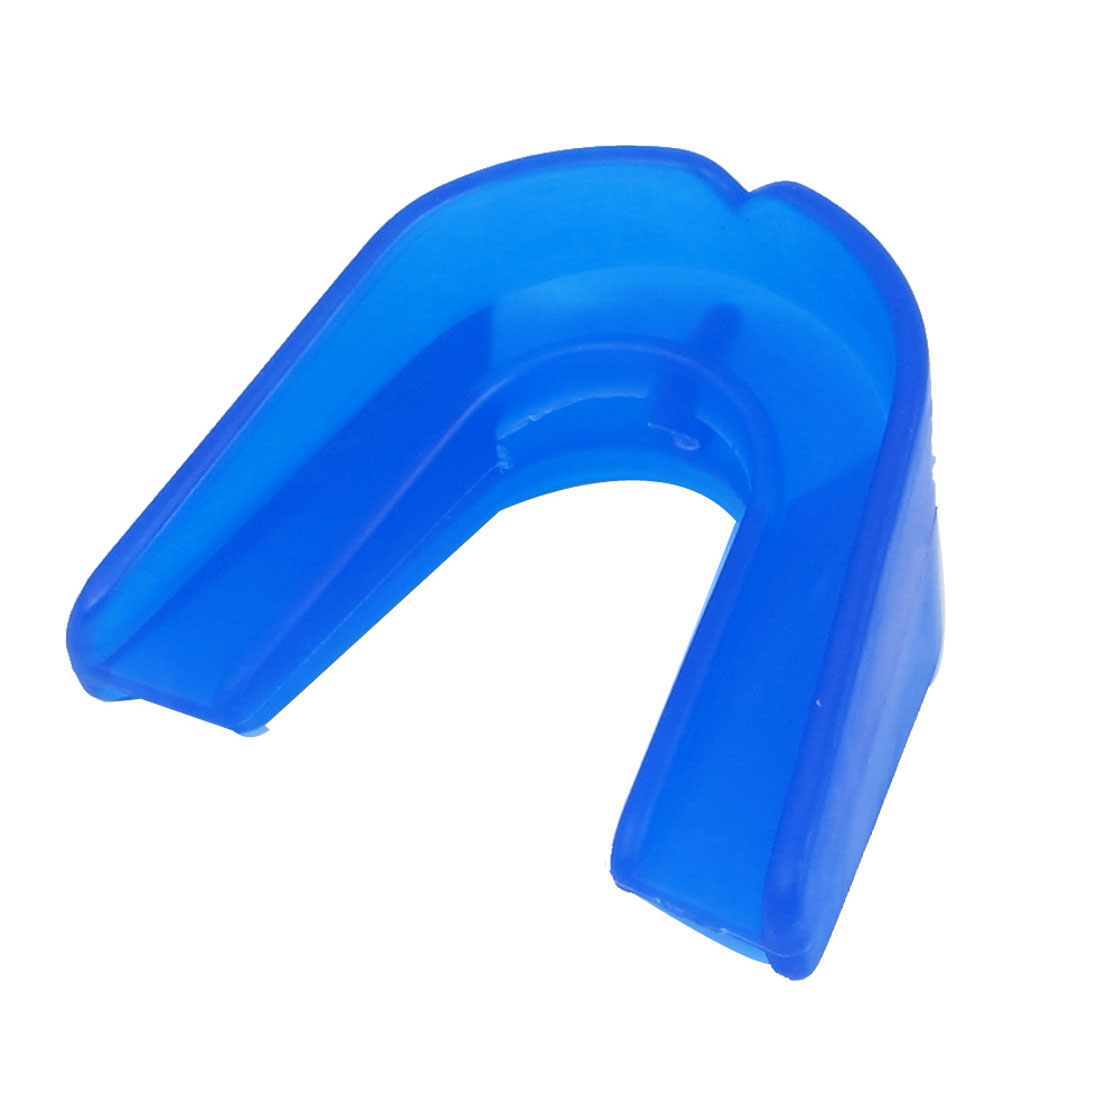 Blue Soft Plastic Sports Boxing Double Layer Guard Mouth Gum Shield Teeth Protector w Case